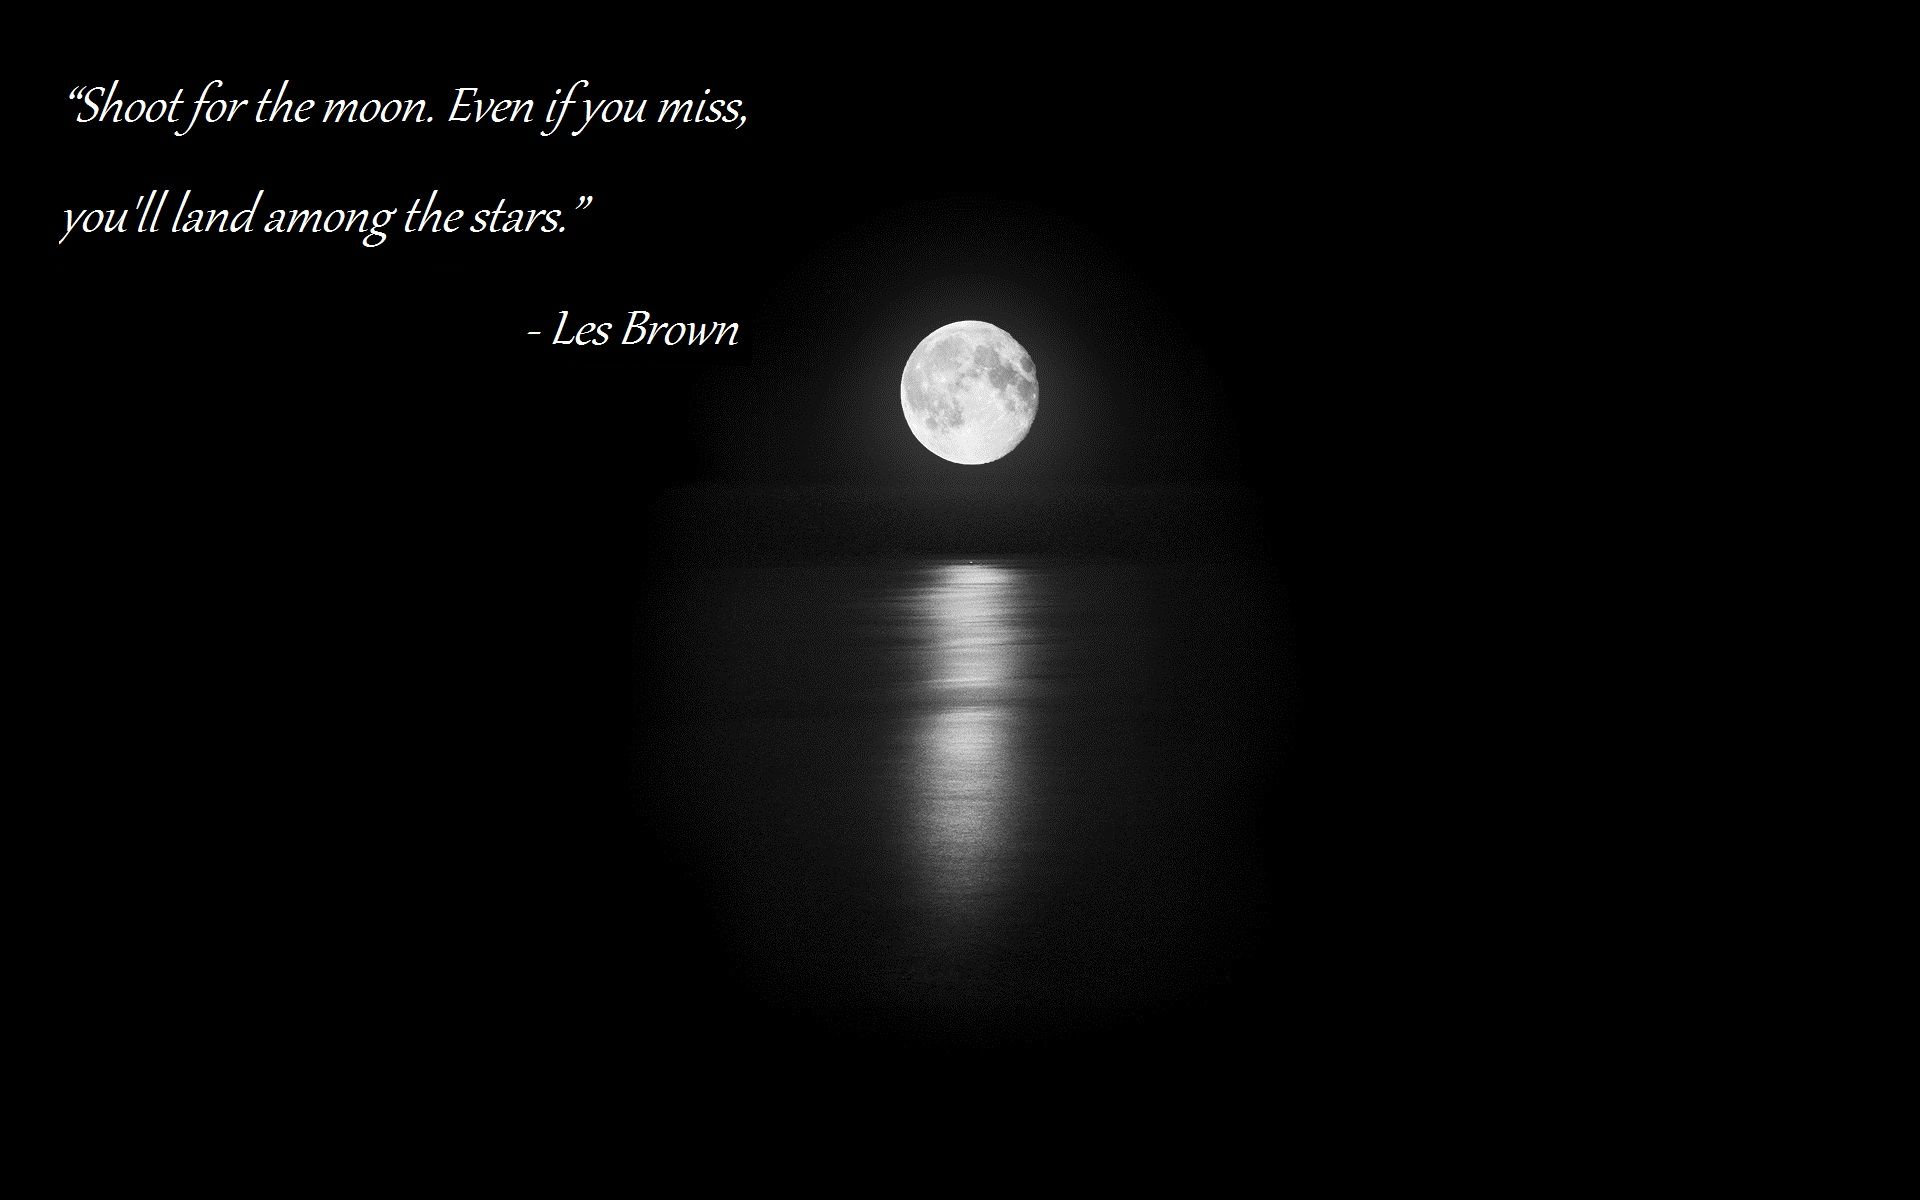 Pinterest Funny Moon Shoot For The Moon Even If You Miss You Ll Land Among The Stars